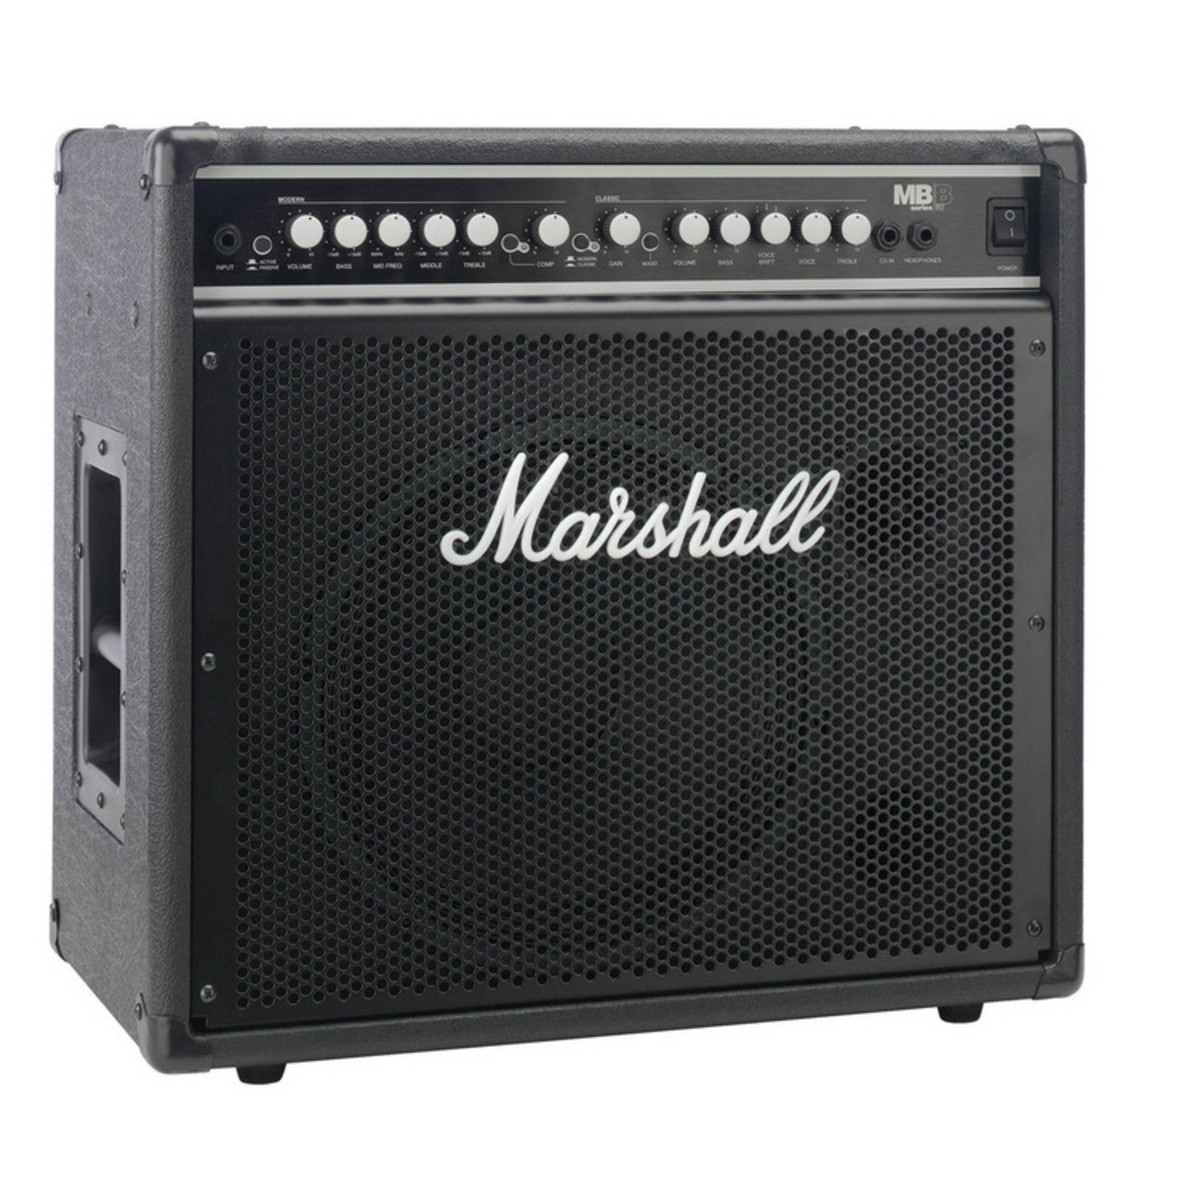 marshall mb60 60w 1x12 bass combo amp 2 channel at gear4music. Black Bedroom Furniture Sets. Home Design Ideas